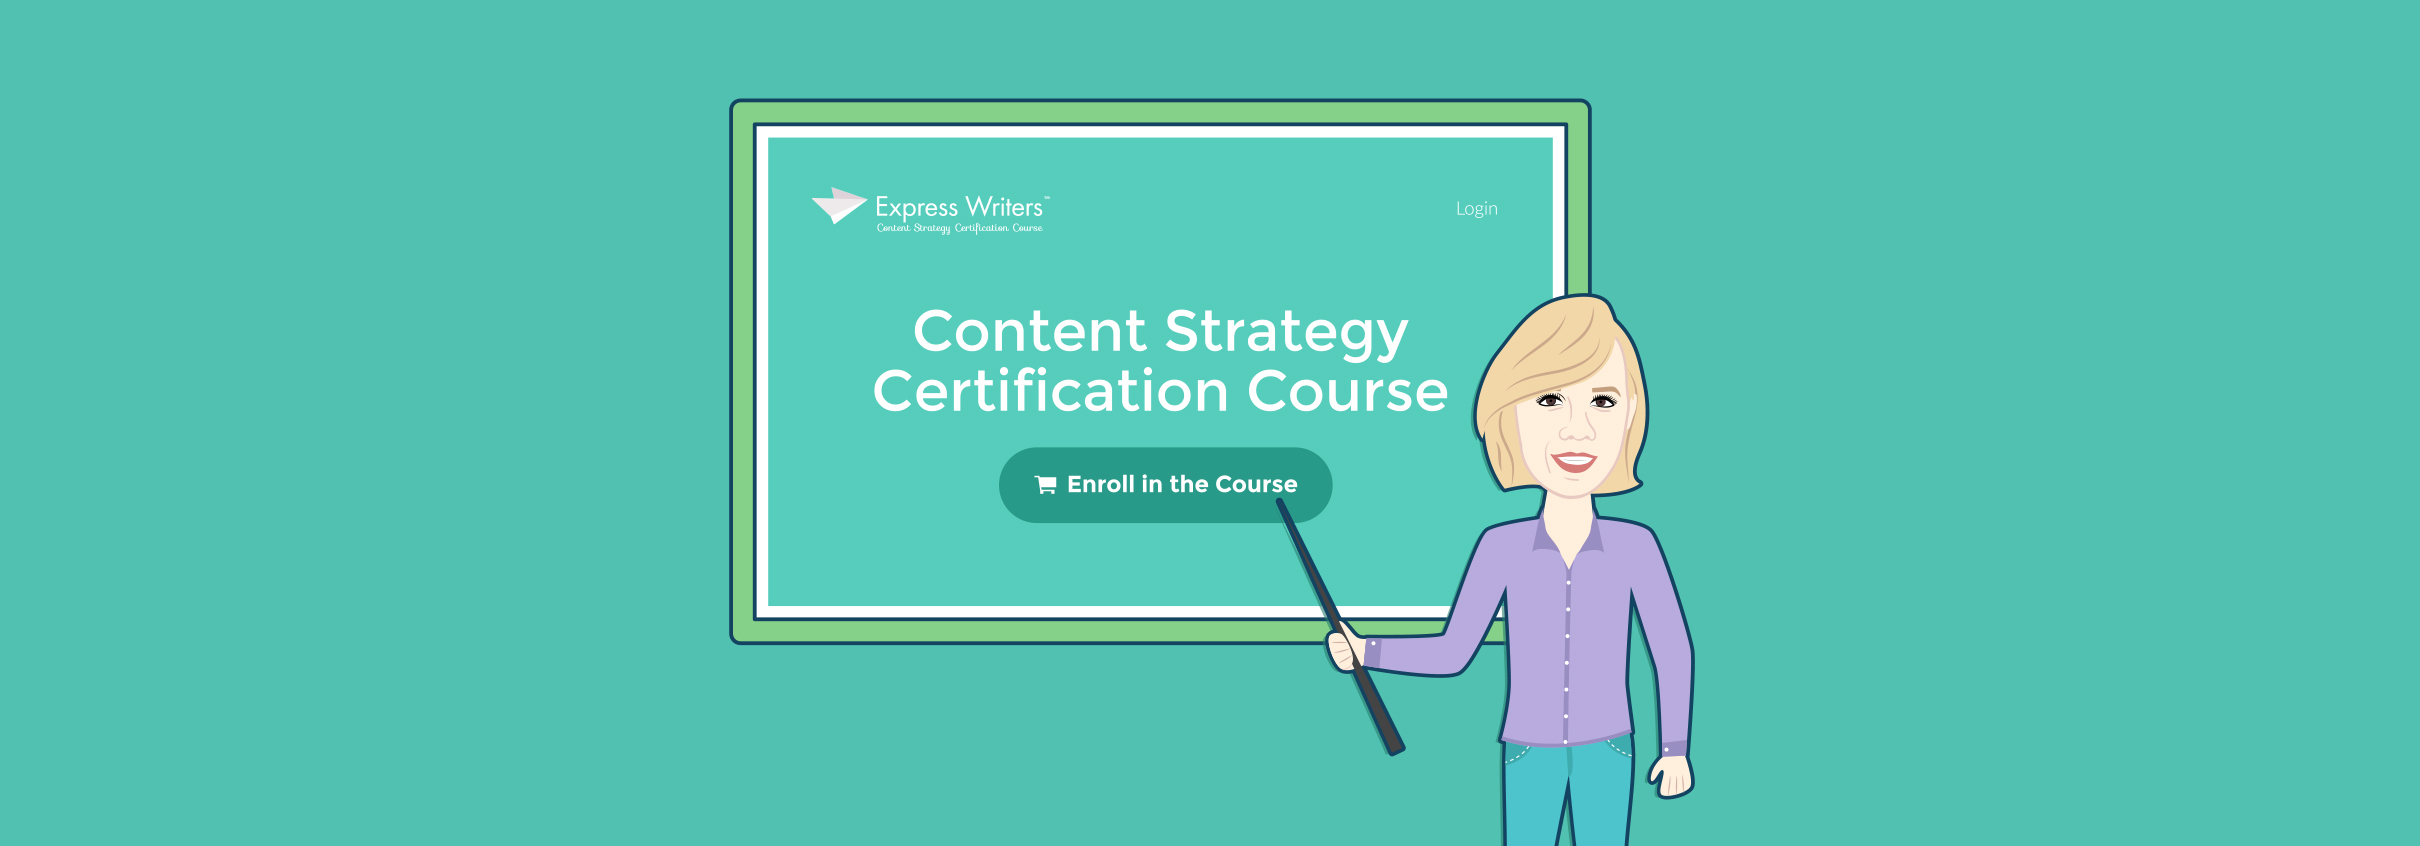 content strategist course